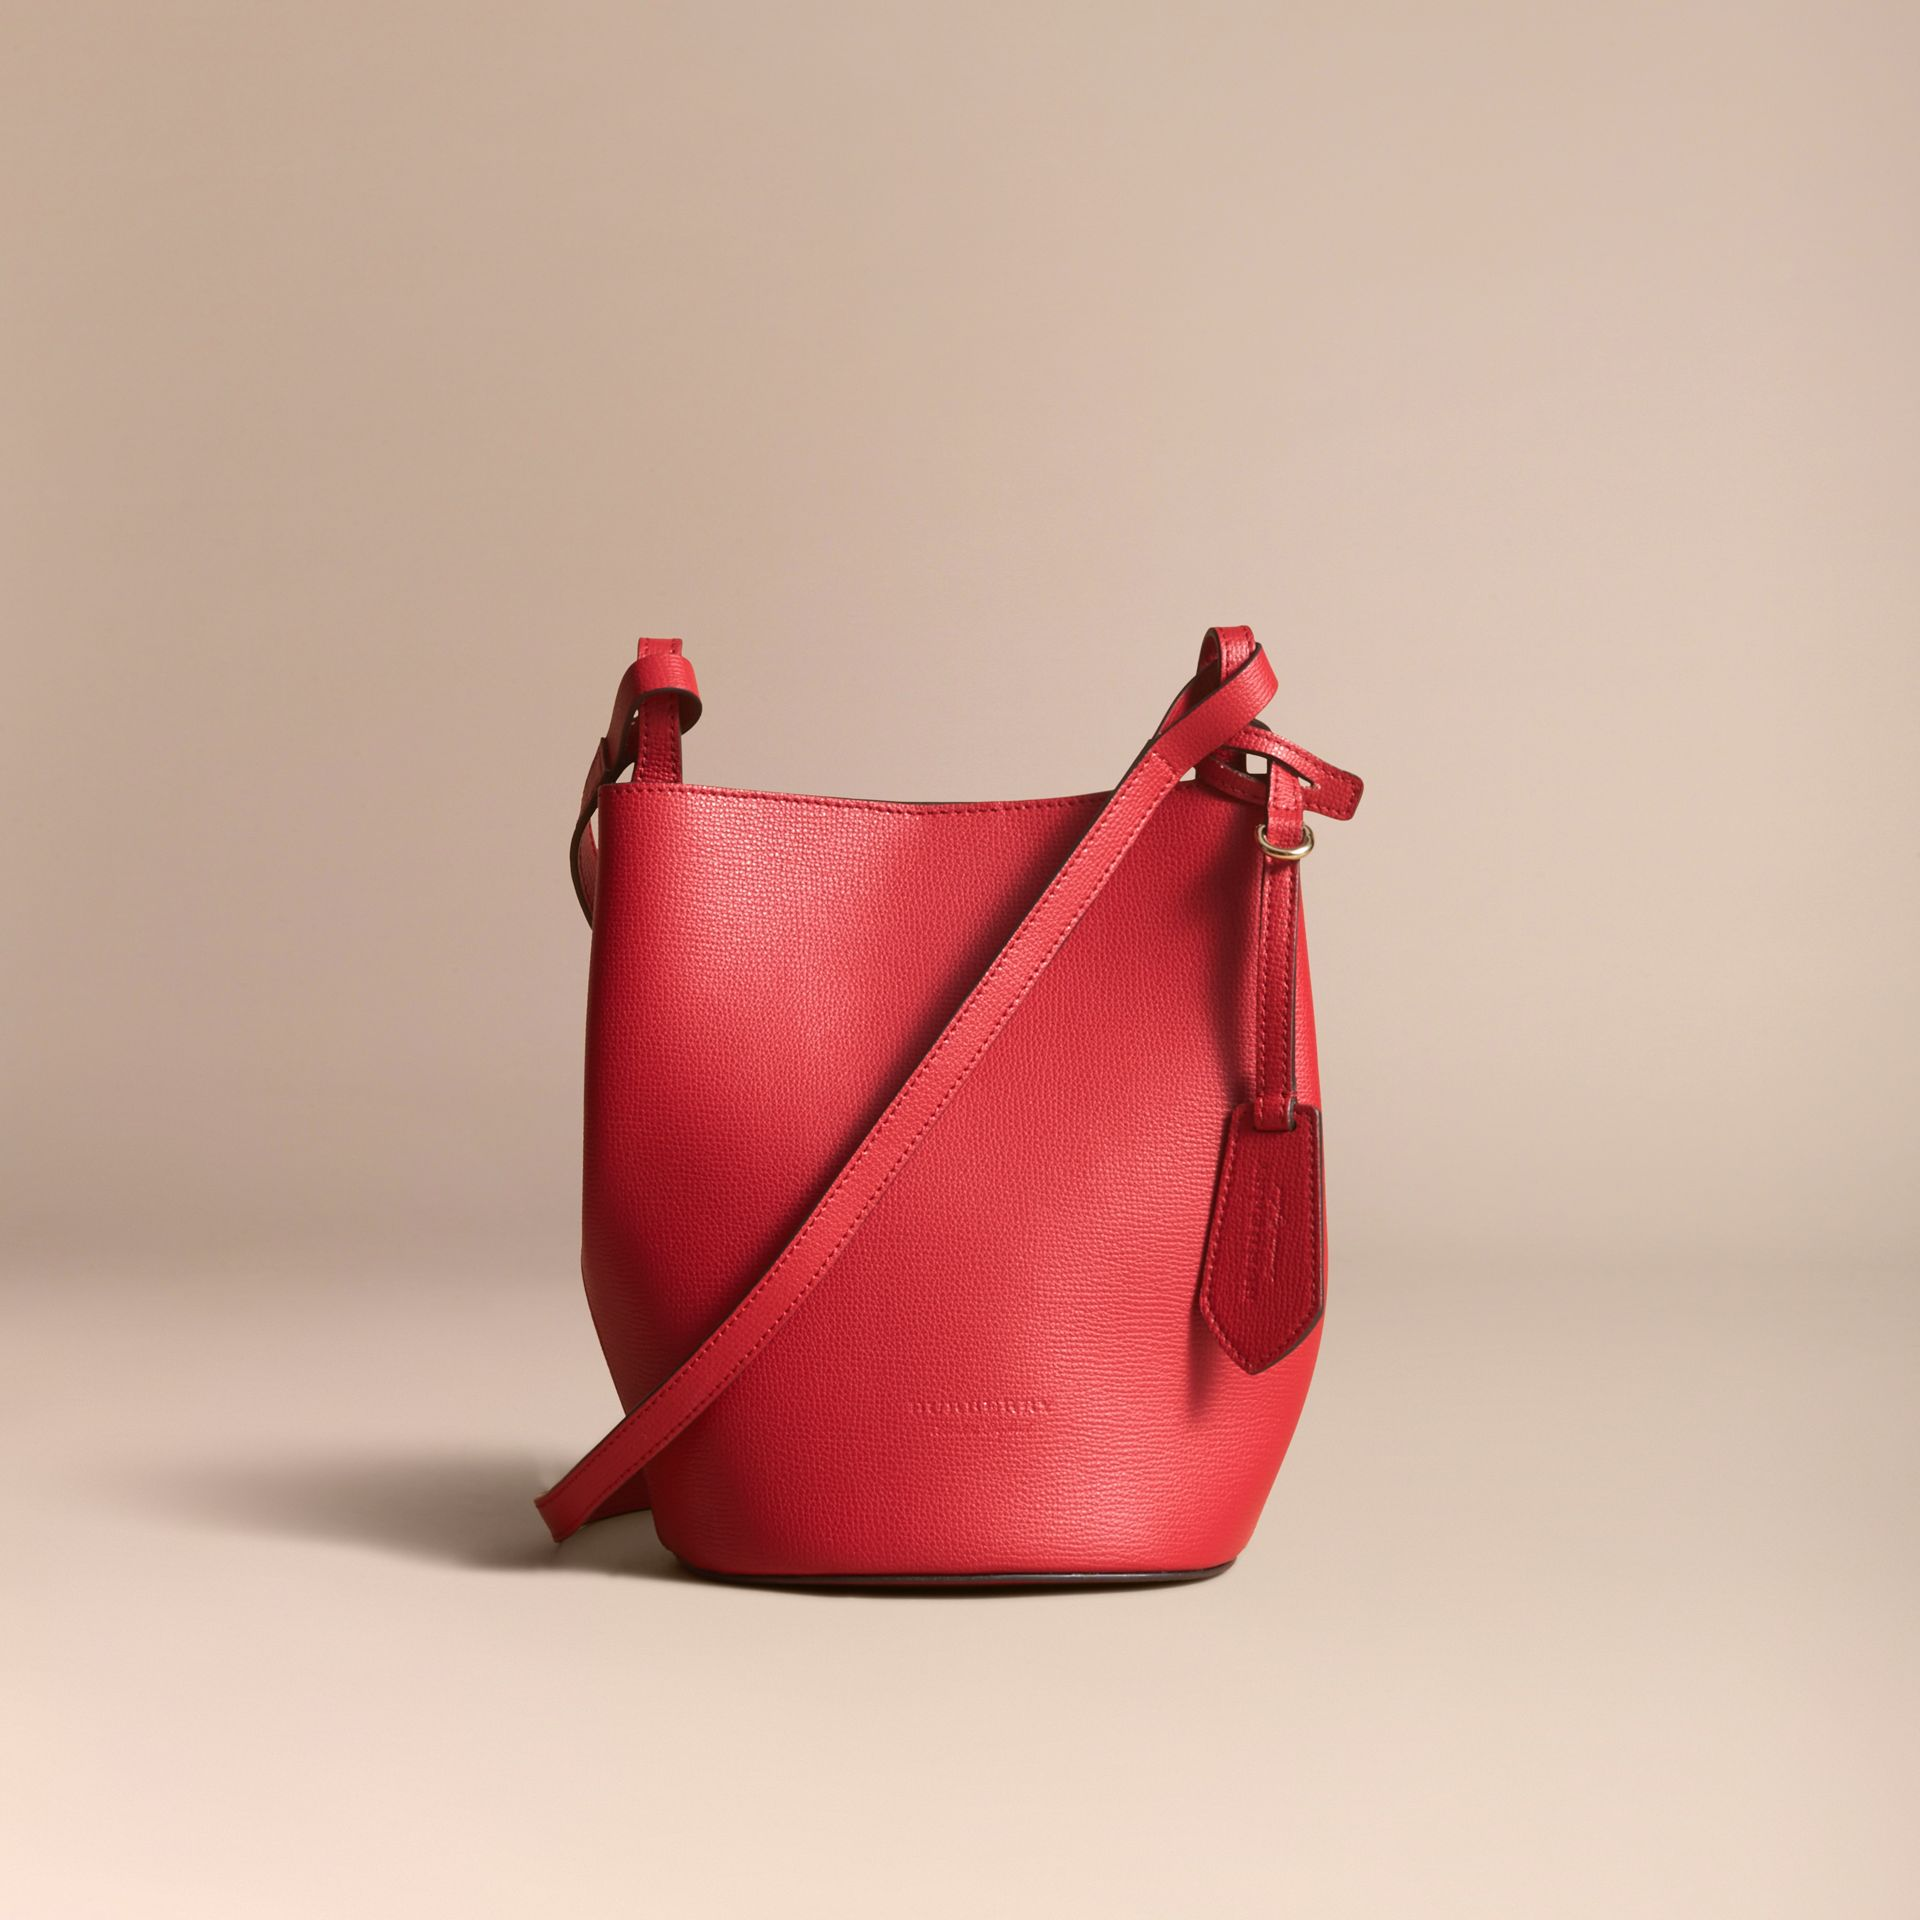 Leather and Haymarket Check Crossbody Bucket Bag in Poppy Red - Women | Burberry Australia - gallery image 7